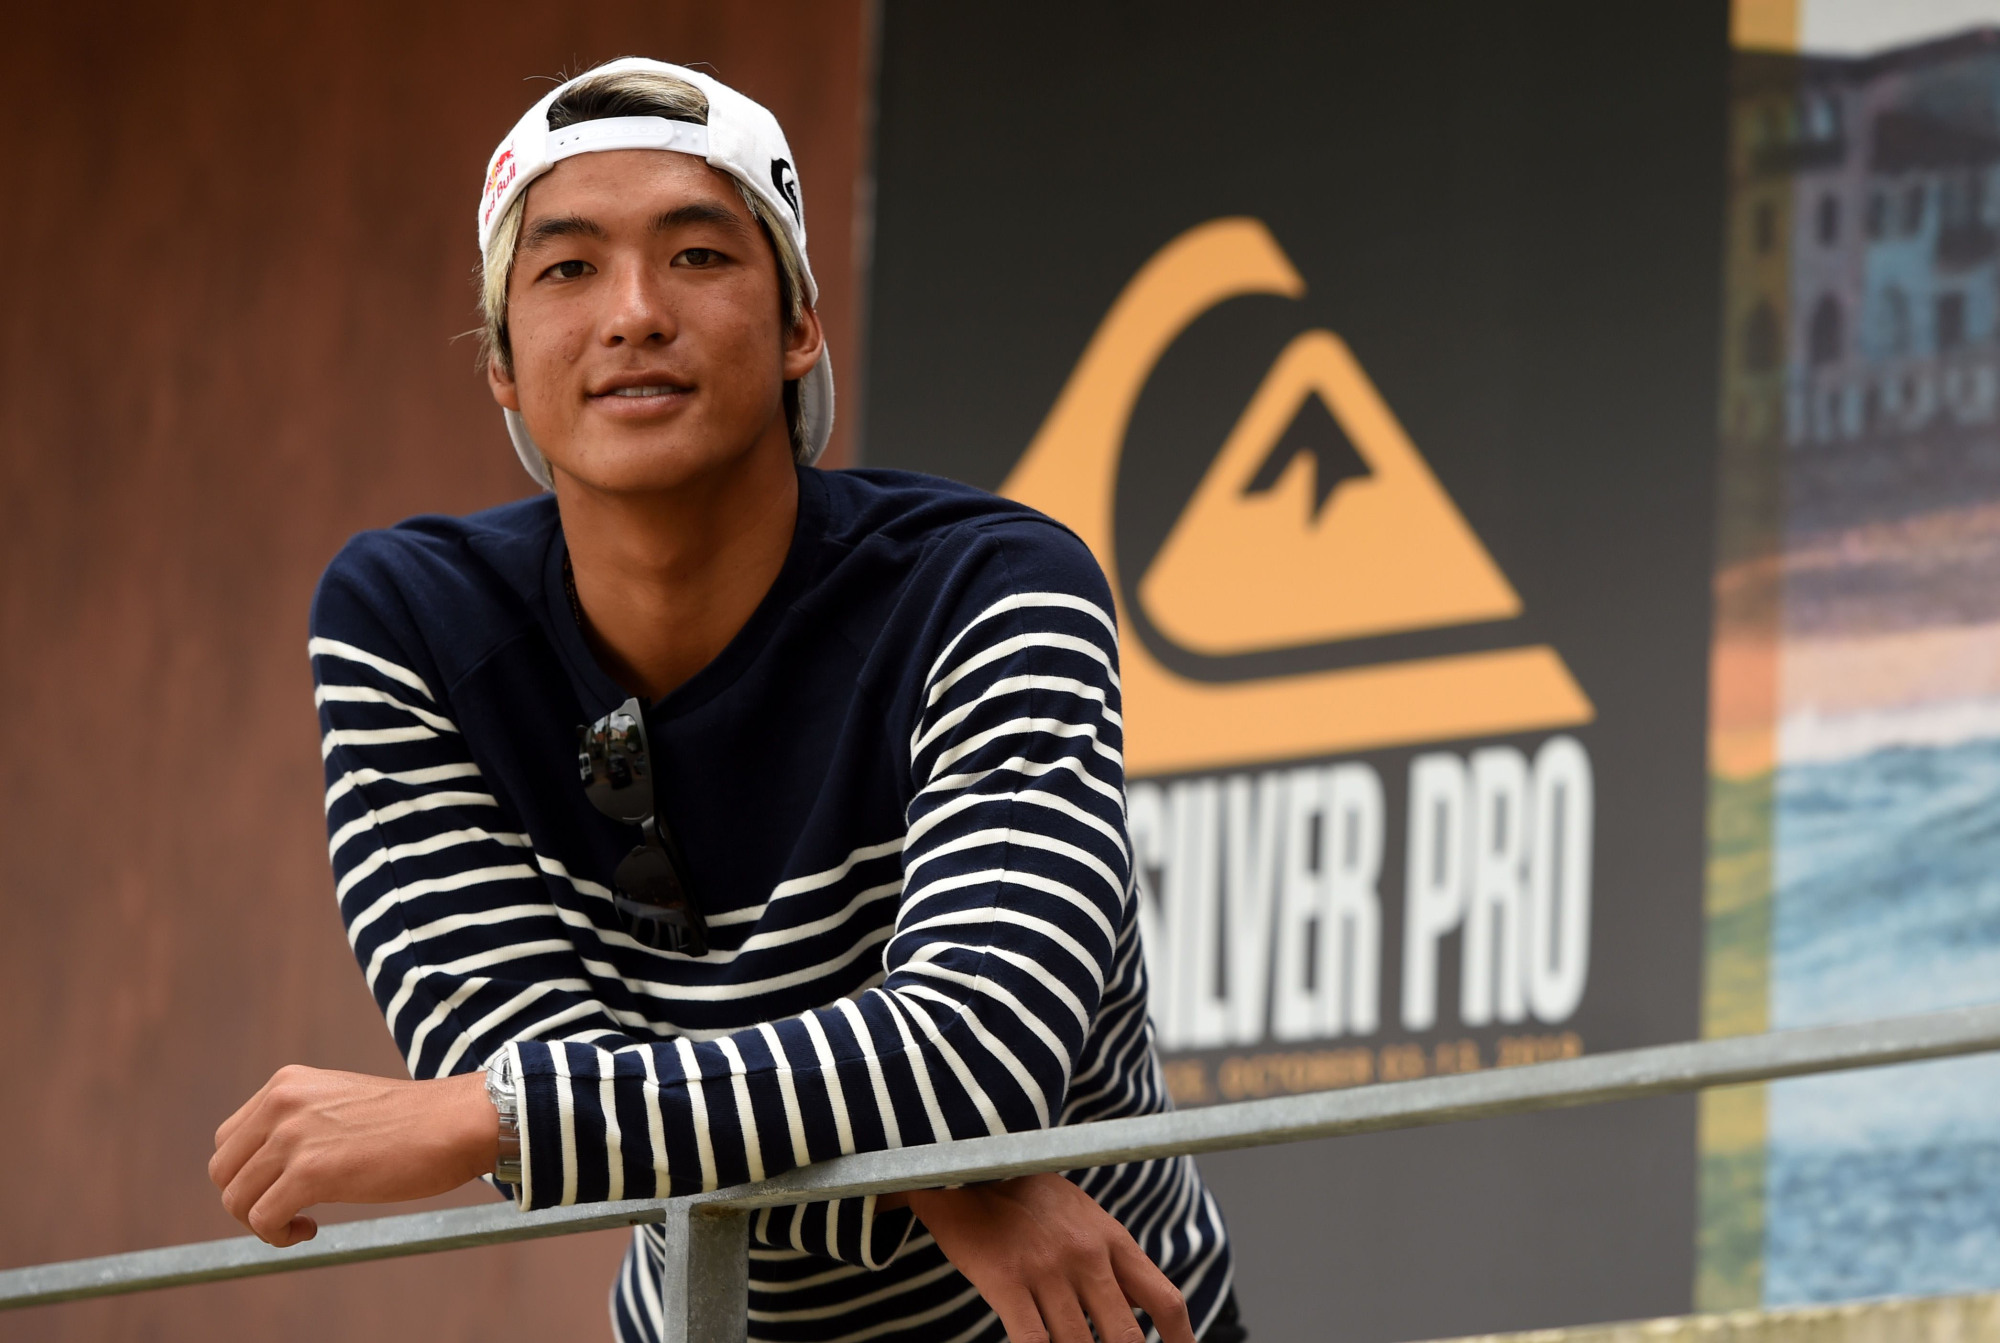 Surfer Kanoa Igarashi poses before the Quiksilver & Roxy Pro France 2019 surf competition on Oct. 2, 2019, in Capbreton, France. | AFP-JIJI